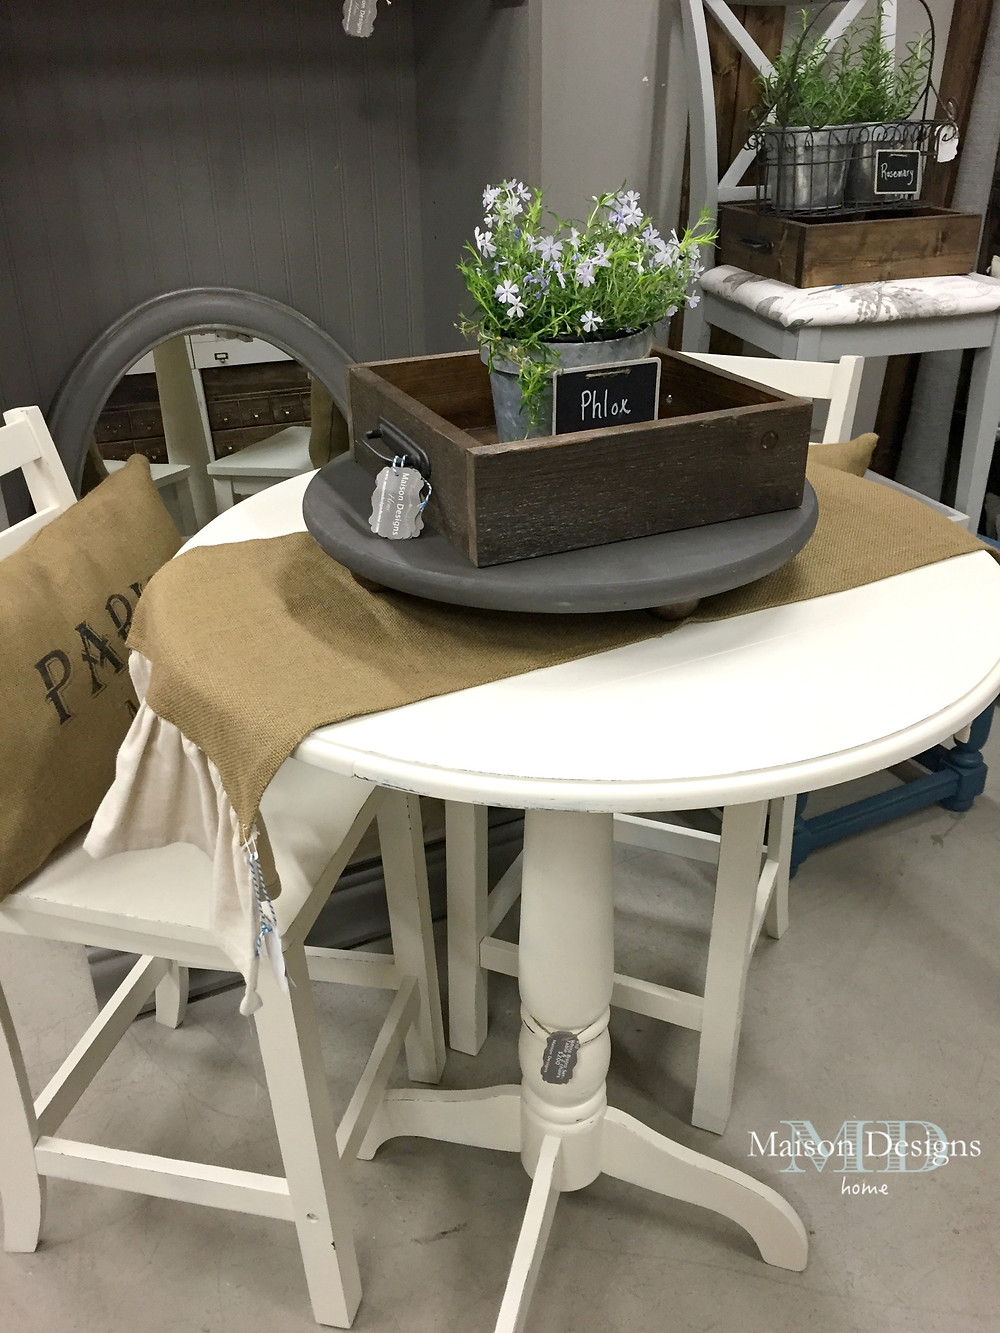 Spring Event Maison Designs Home